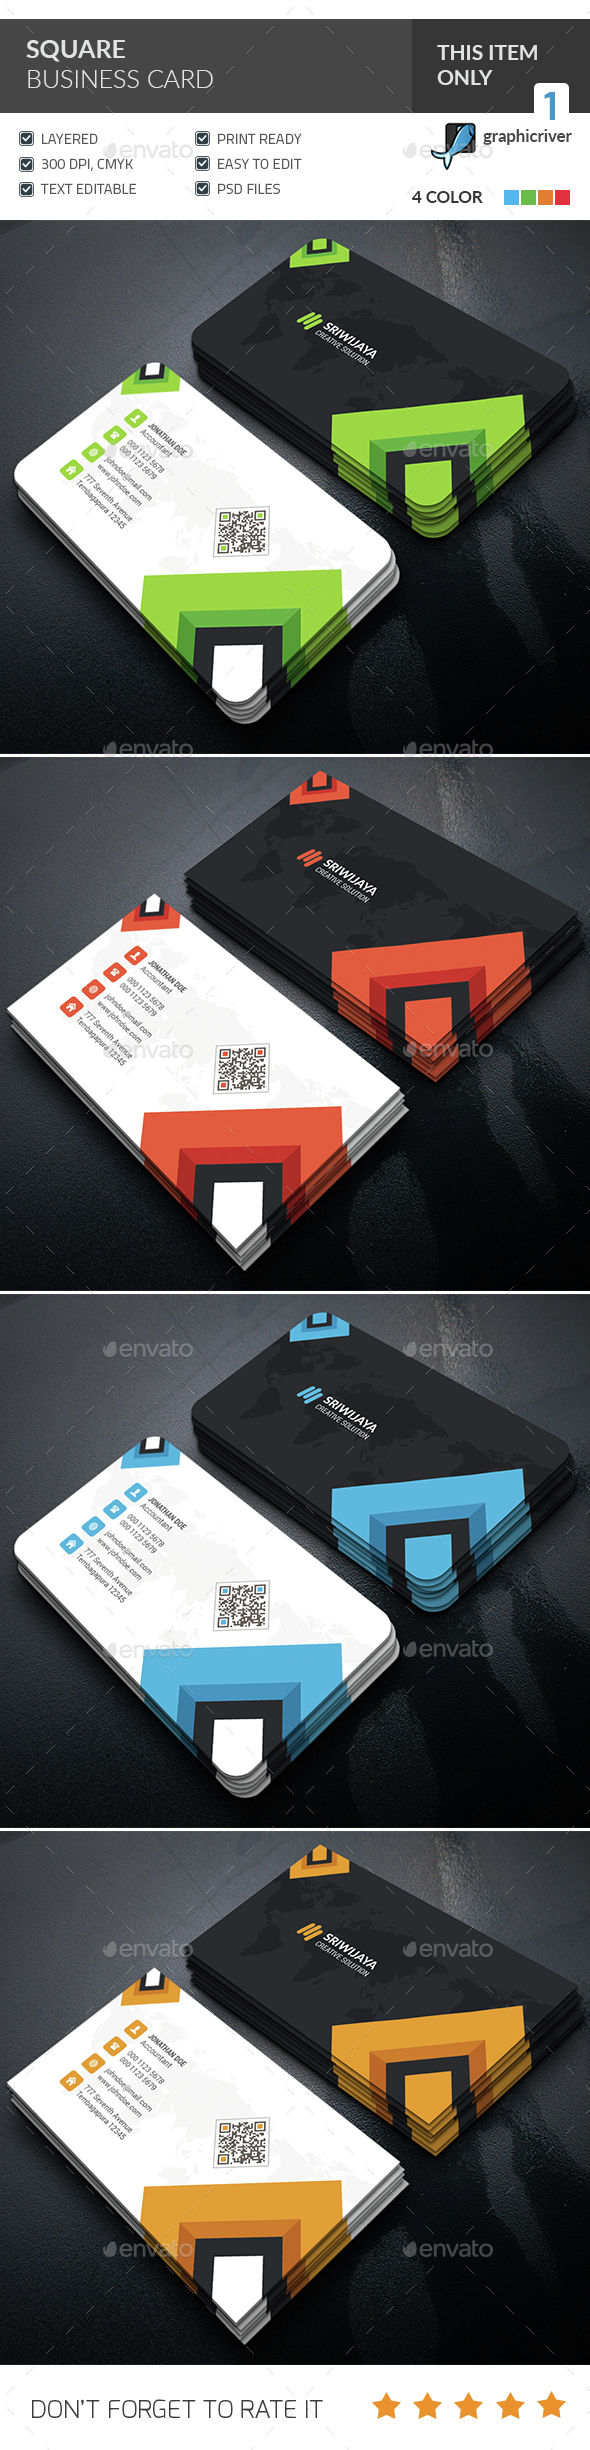 Square Corporate Business Card  - Corporate Business Cards